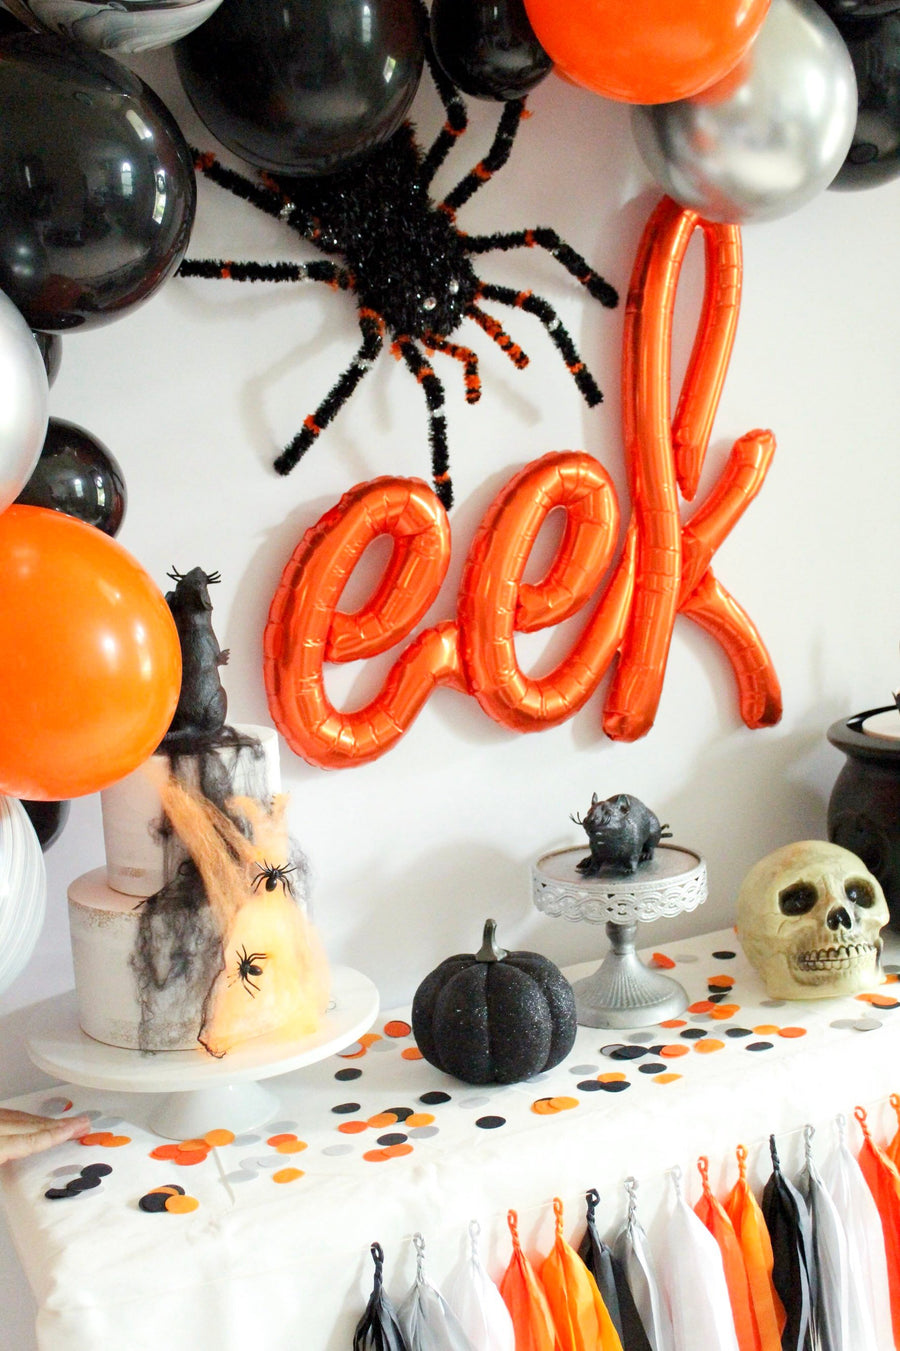 """Eek"" Orange Halloween Balloon"